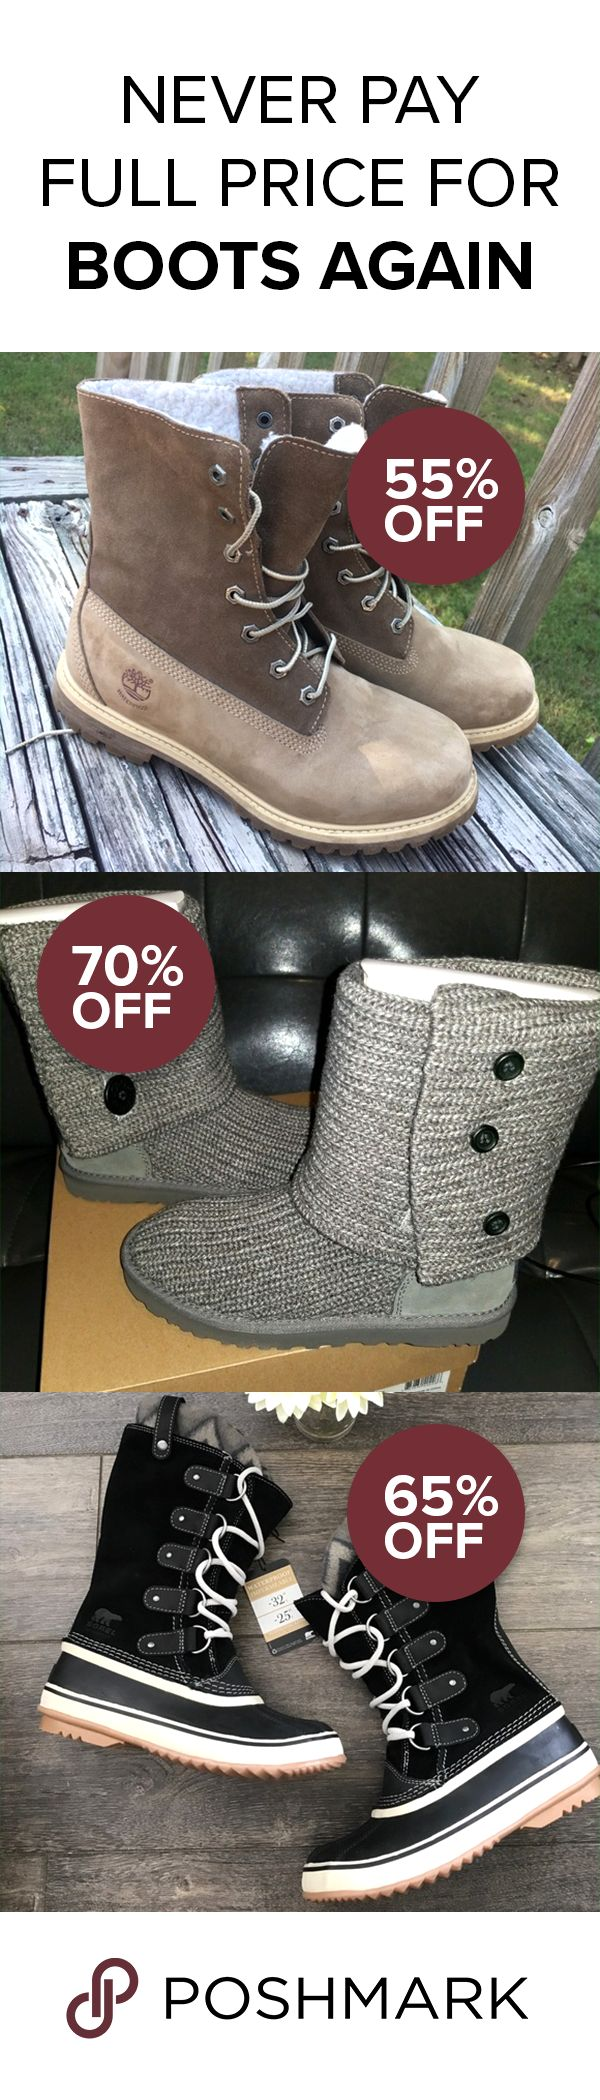 Shop Sorel, Uggs, Timberlands and other winter boots at up to 90% off on Poshmark! Buyer protection guaranteed. Download the free app and start shopping!